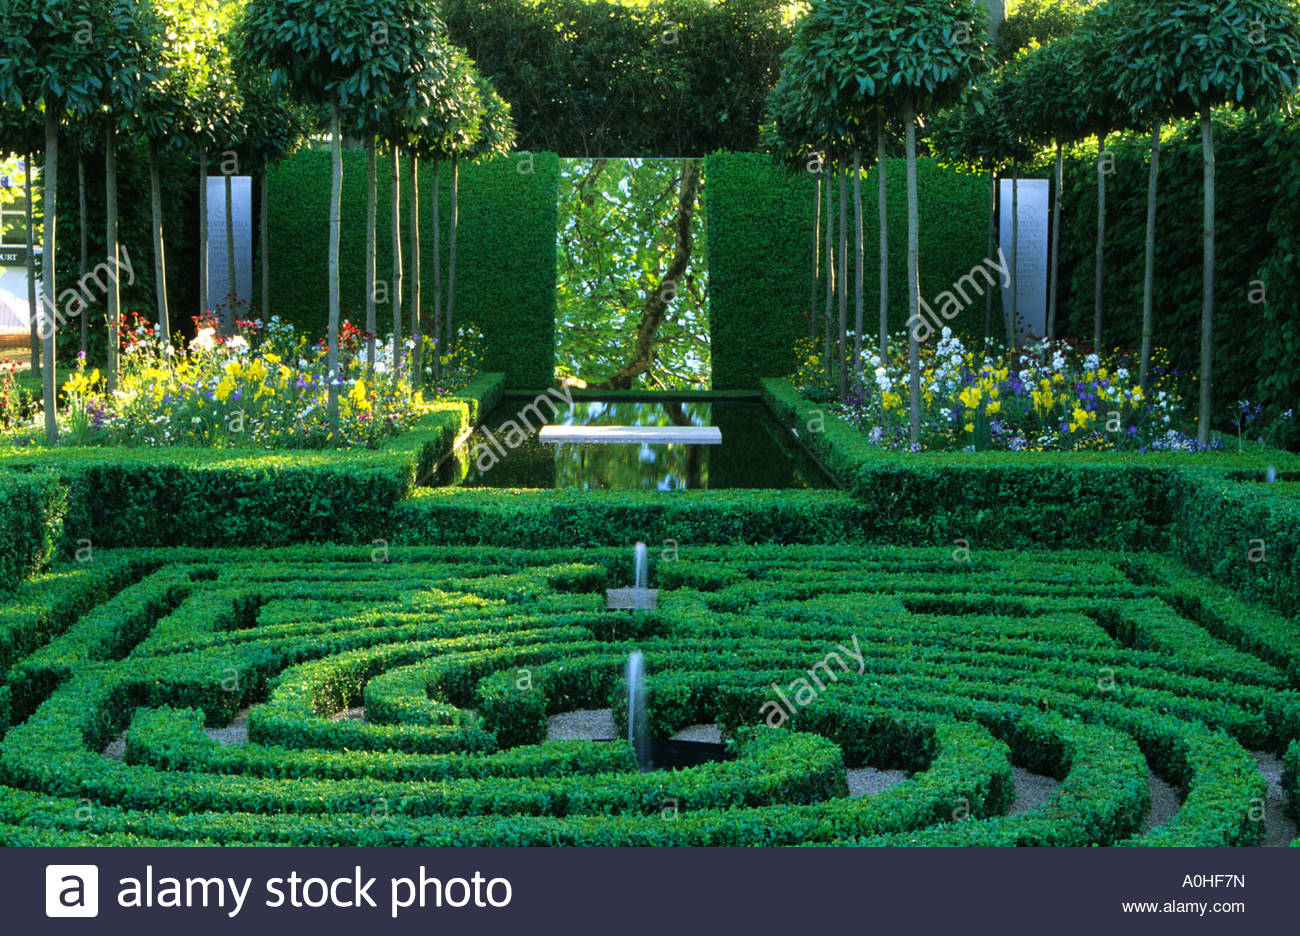 Boxwood labyrinth knot garden stock photo royalty free for Knot garden design ideas